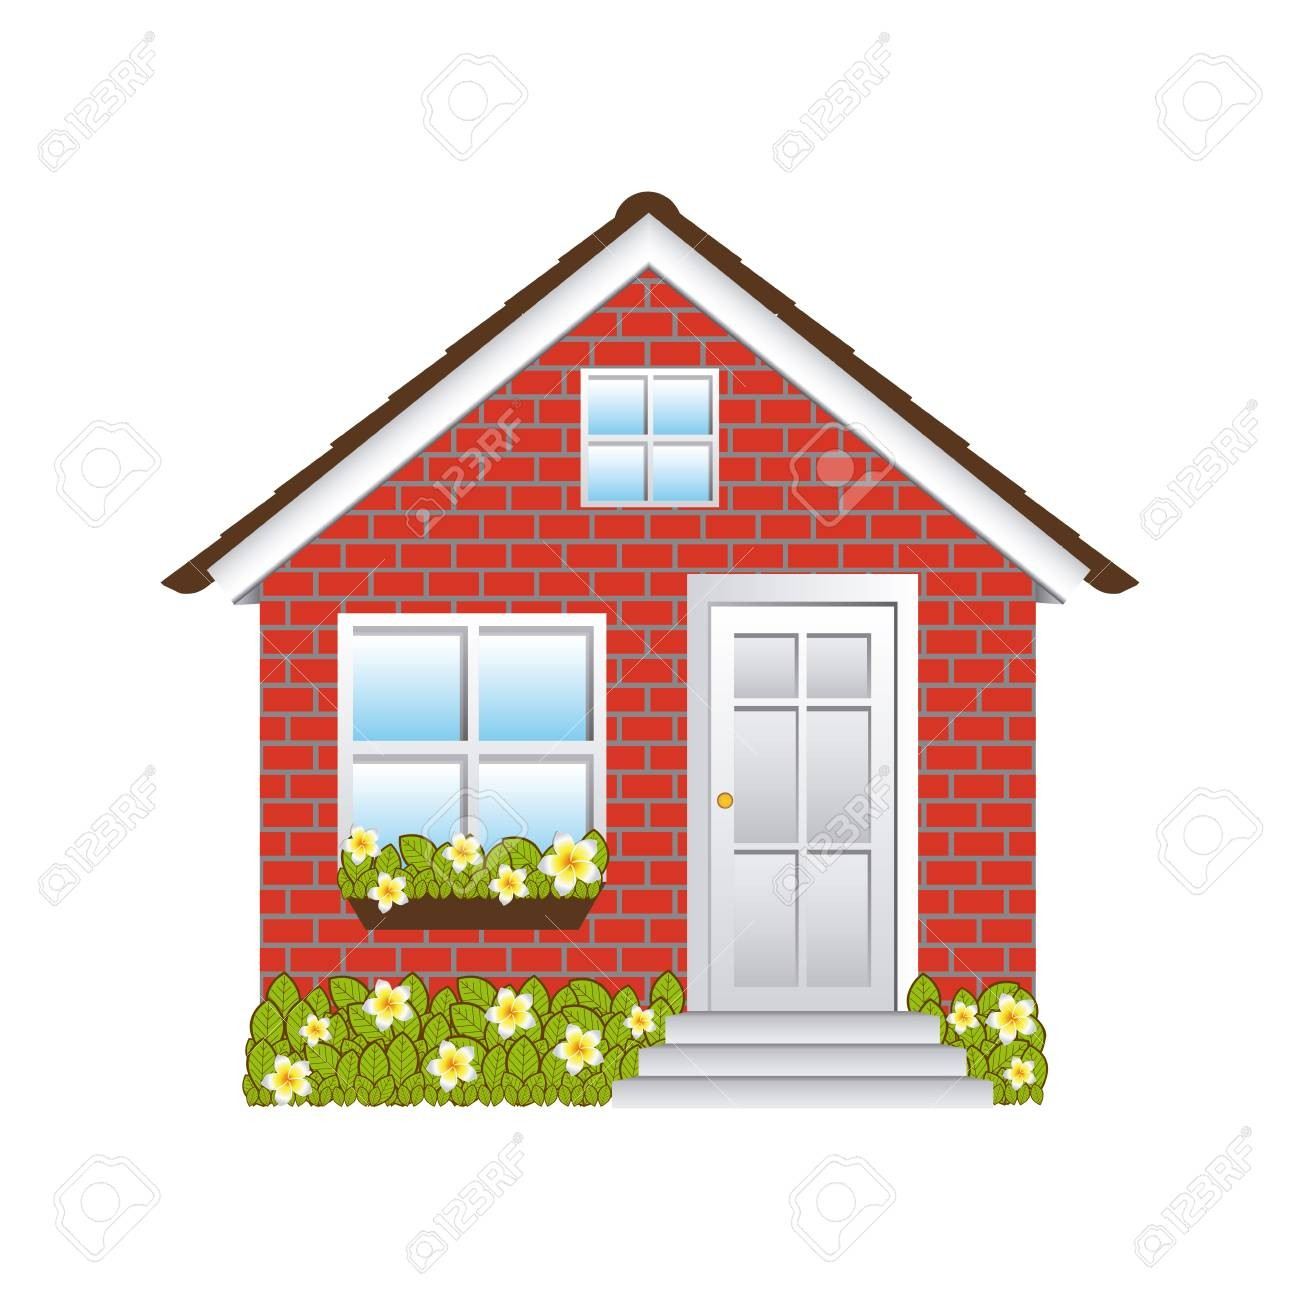 With Clipart Of Small House 74991856 Comfortable Facade Brick Wall.